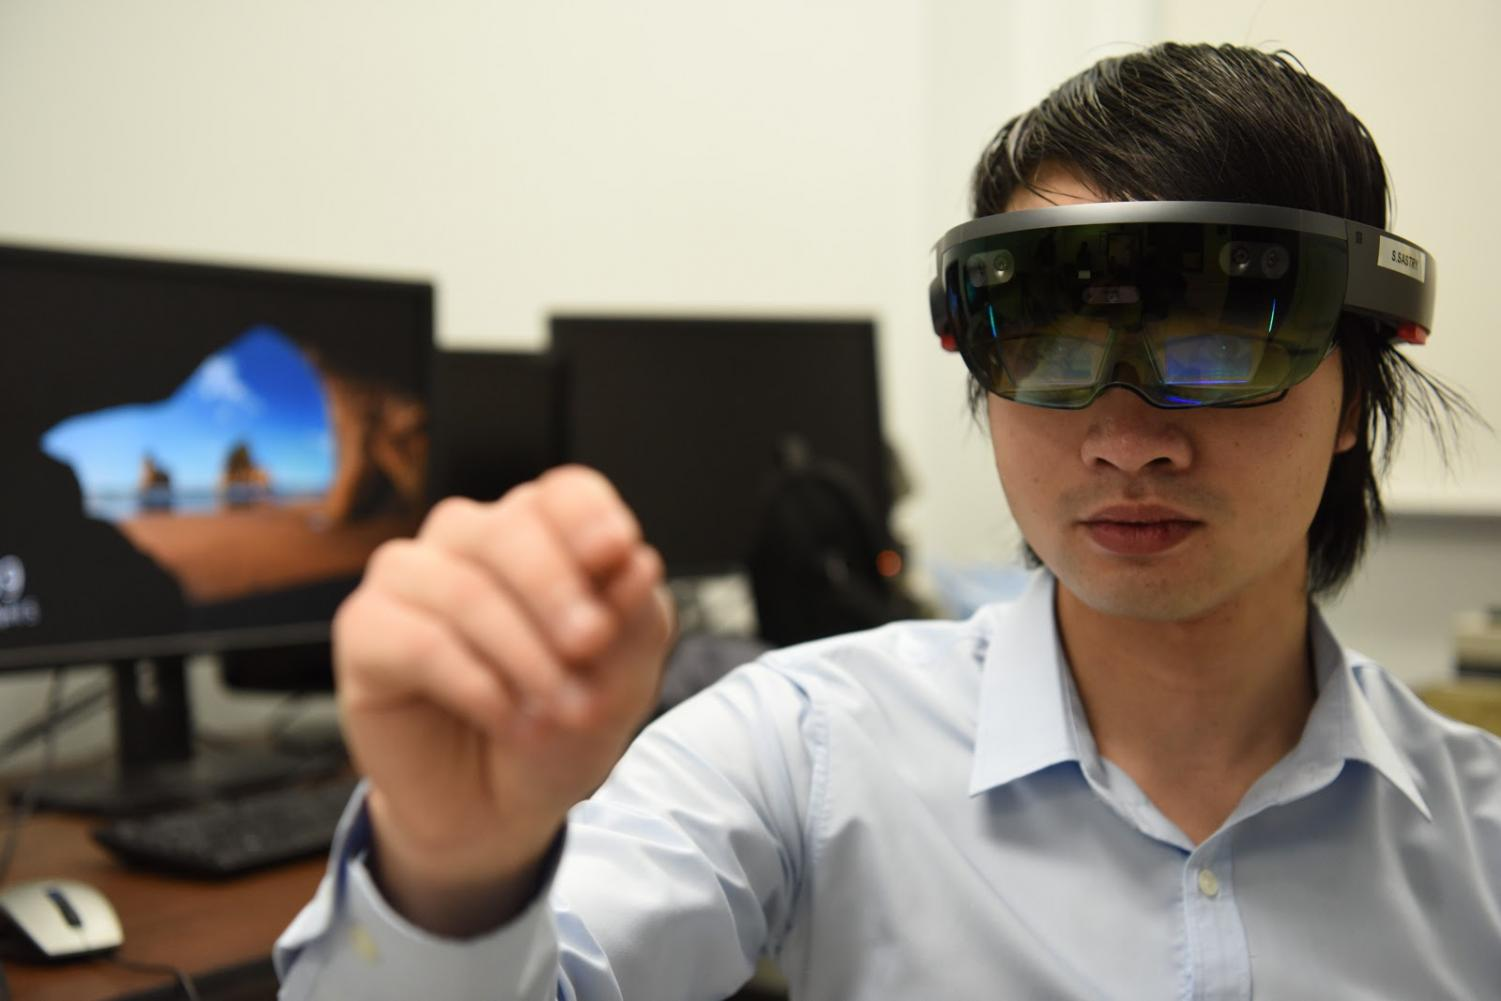 Bach Tran interacts with virtual images on the Microsoft HoloLens.